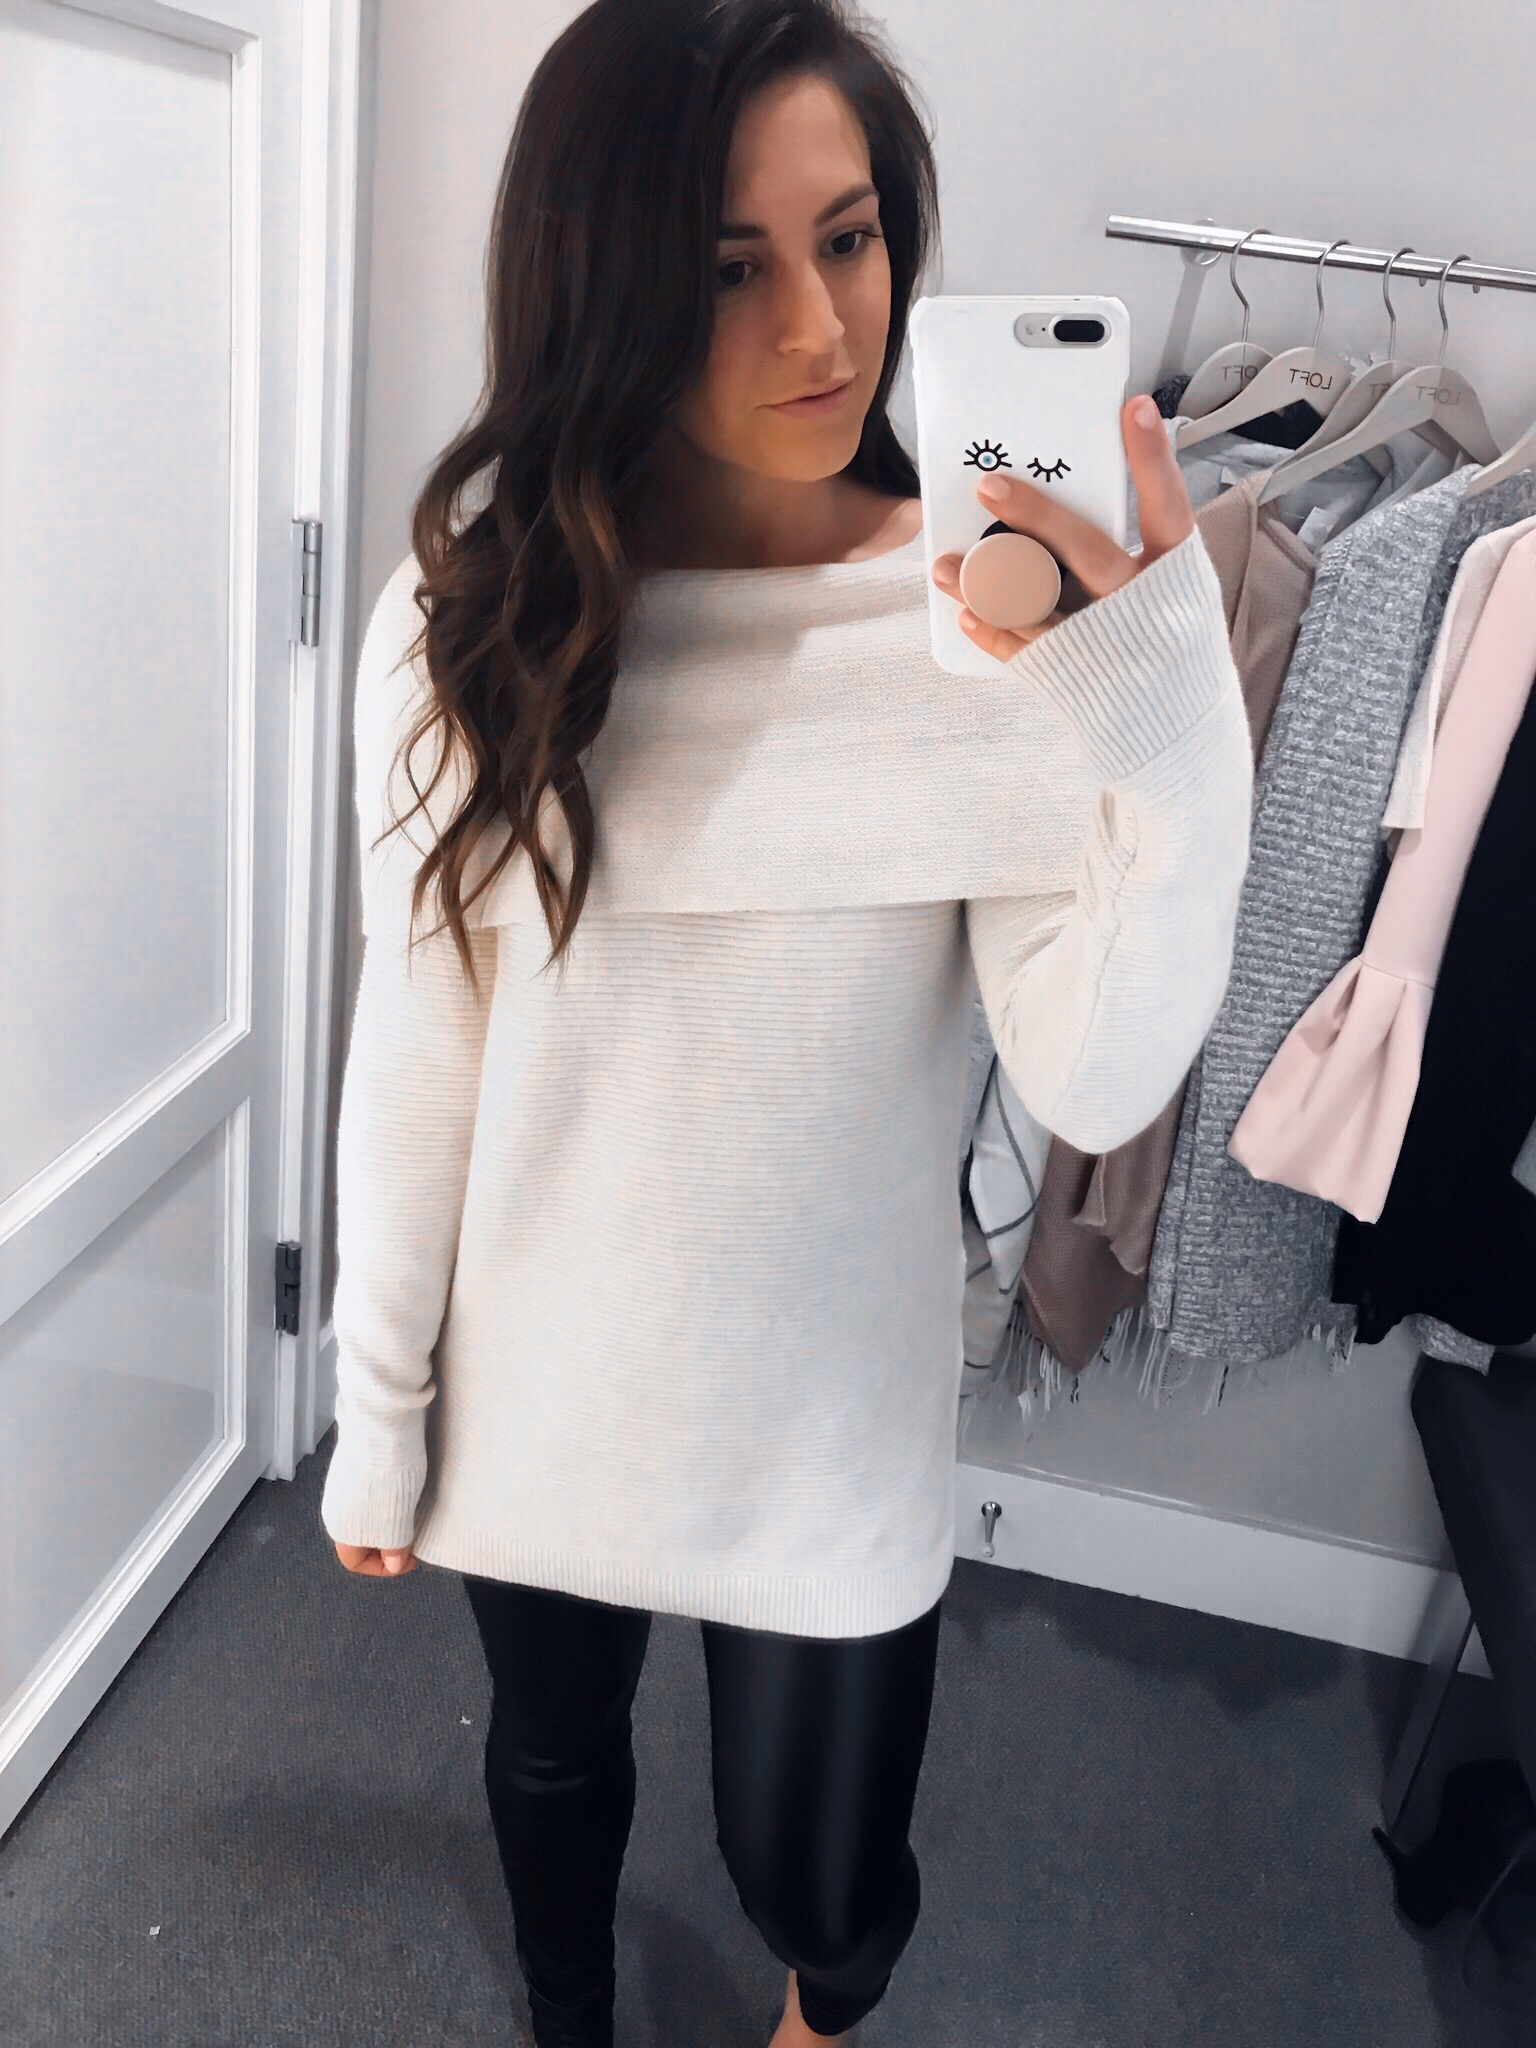 My Outfits On Sale | Pine Barren Beauty | off the shoulder sweater, Black Friday sales, winter outfit idea